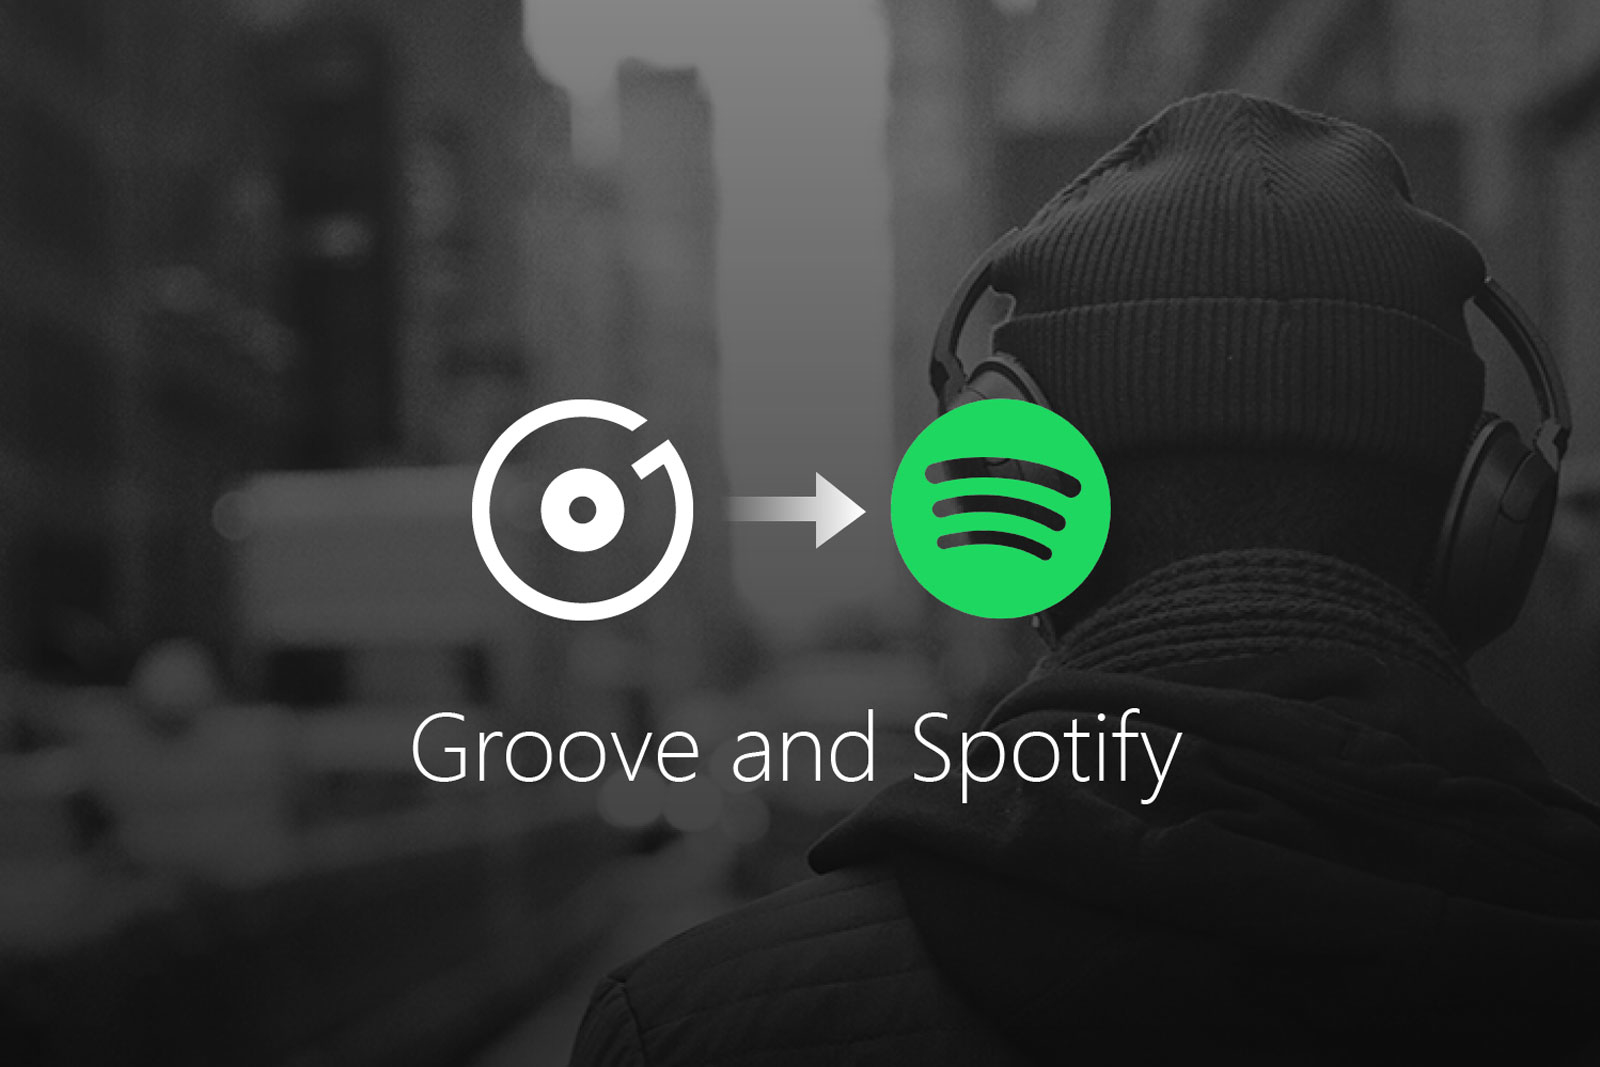 Microsoft Partners With Spotify For Groove Music Streaming Services